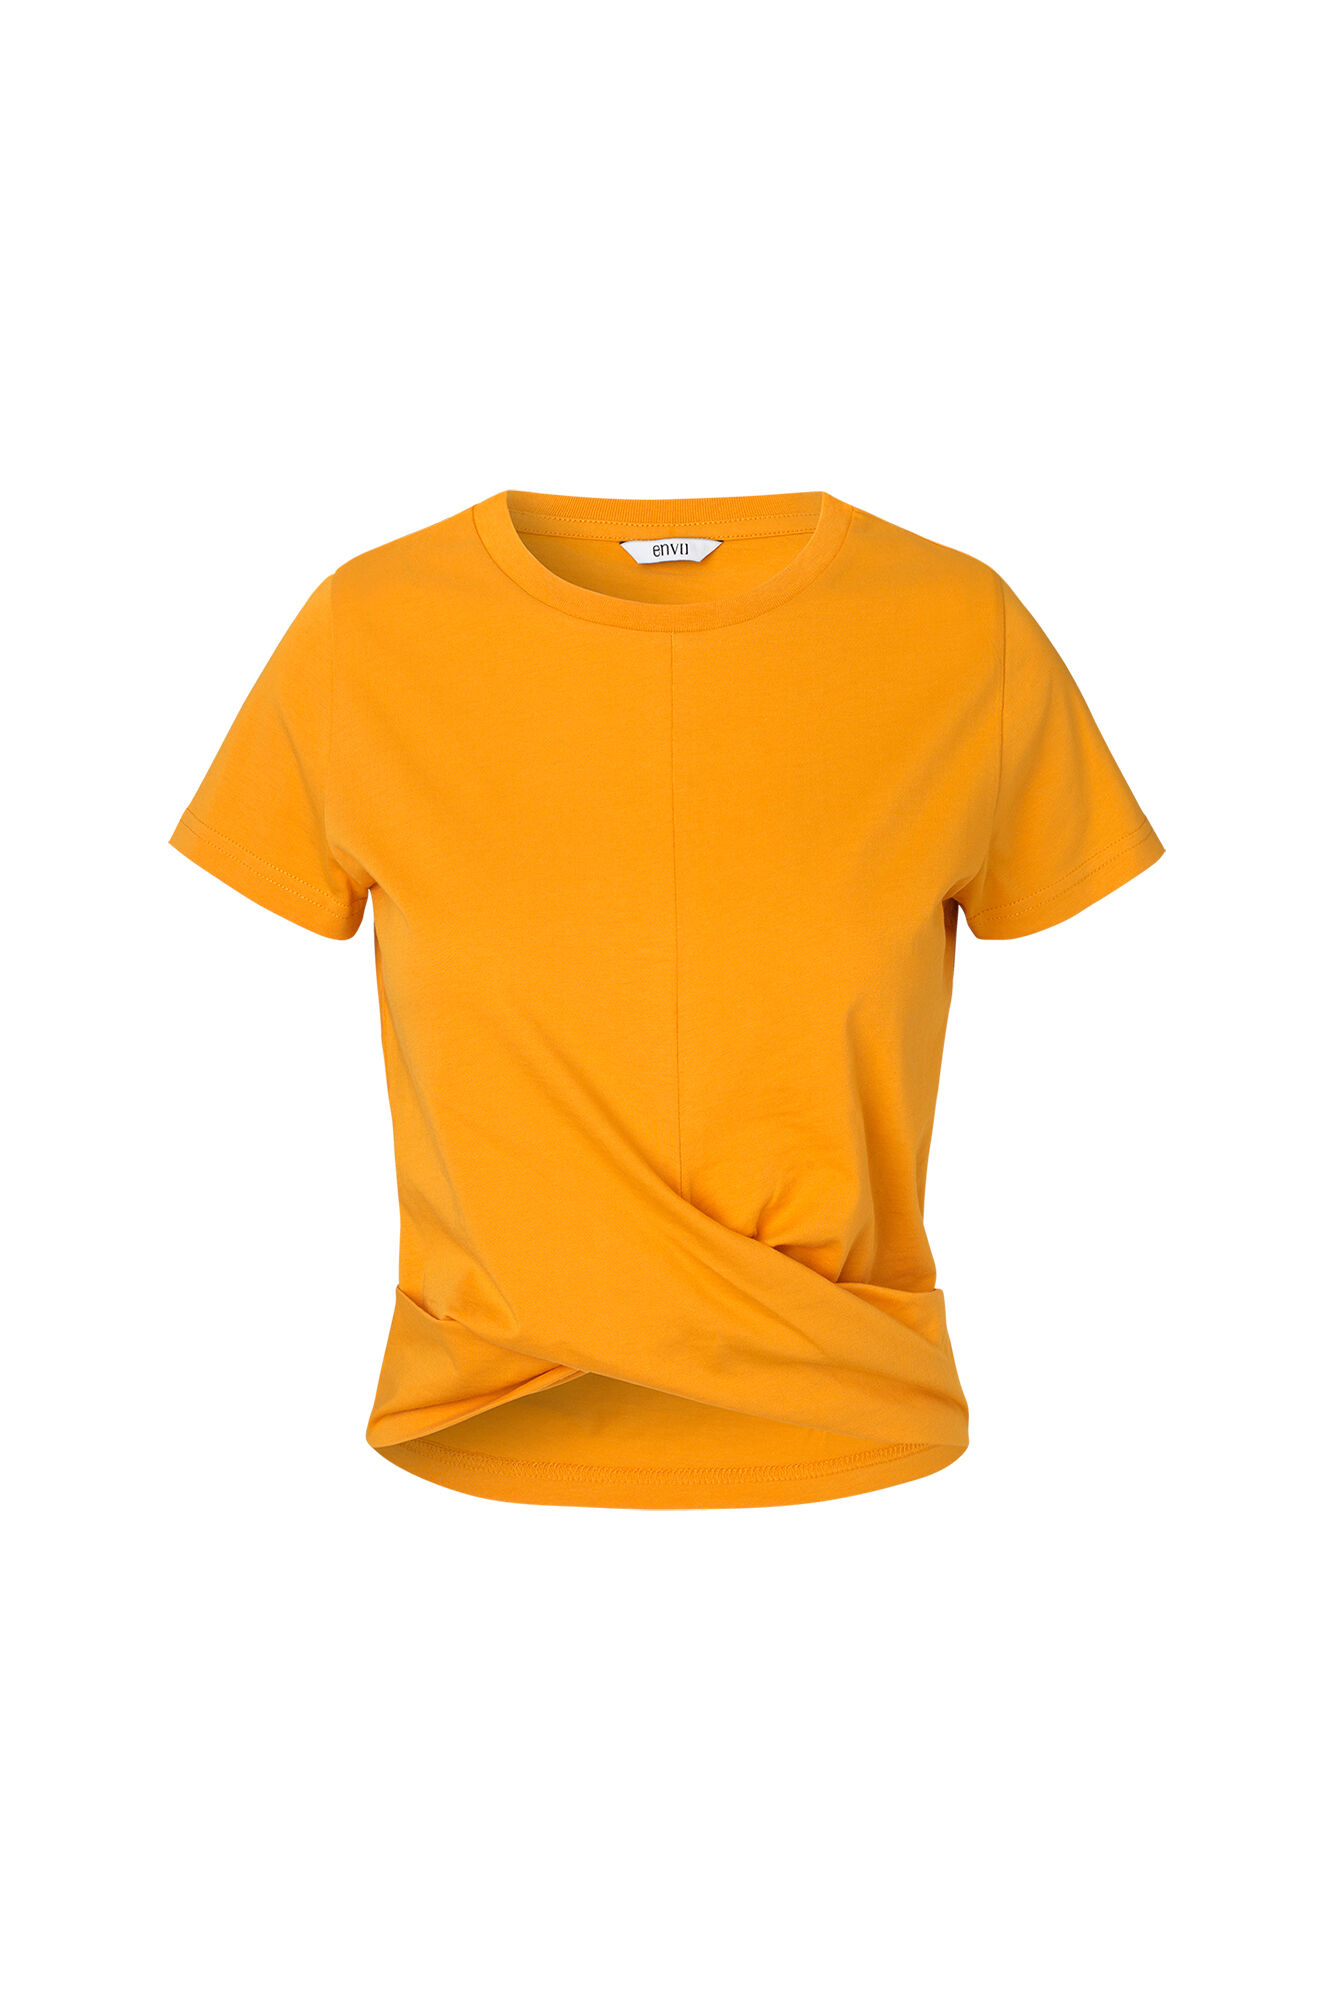 ENBREEZE SS TEE 5867, RADIENT YELLOW